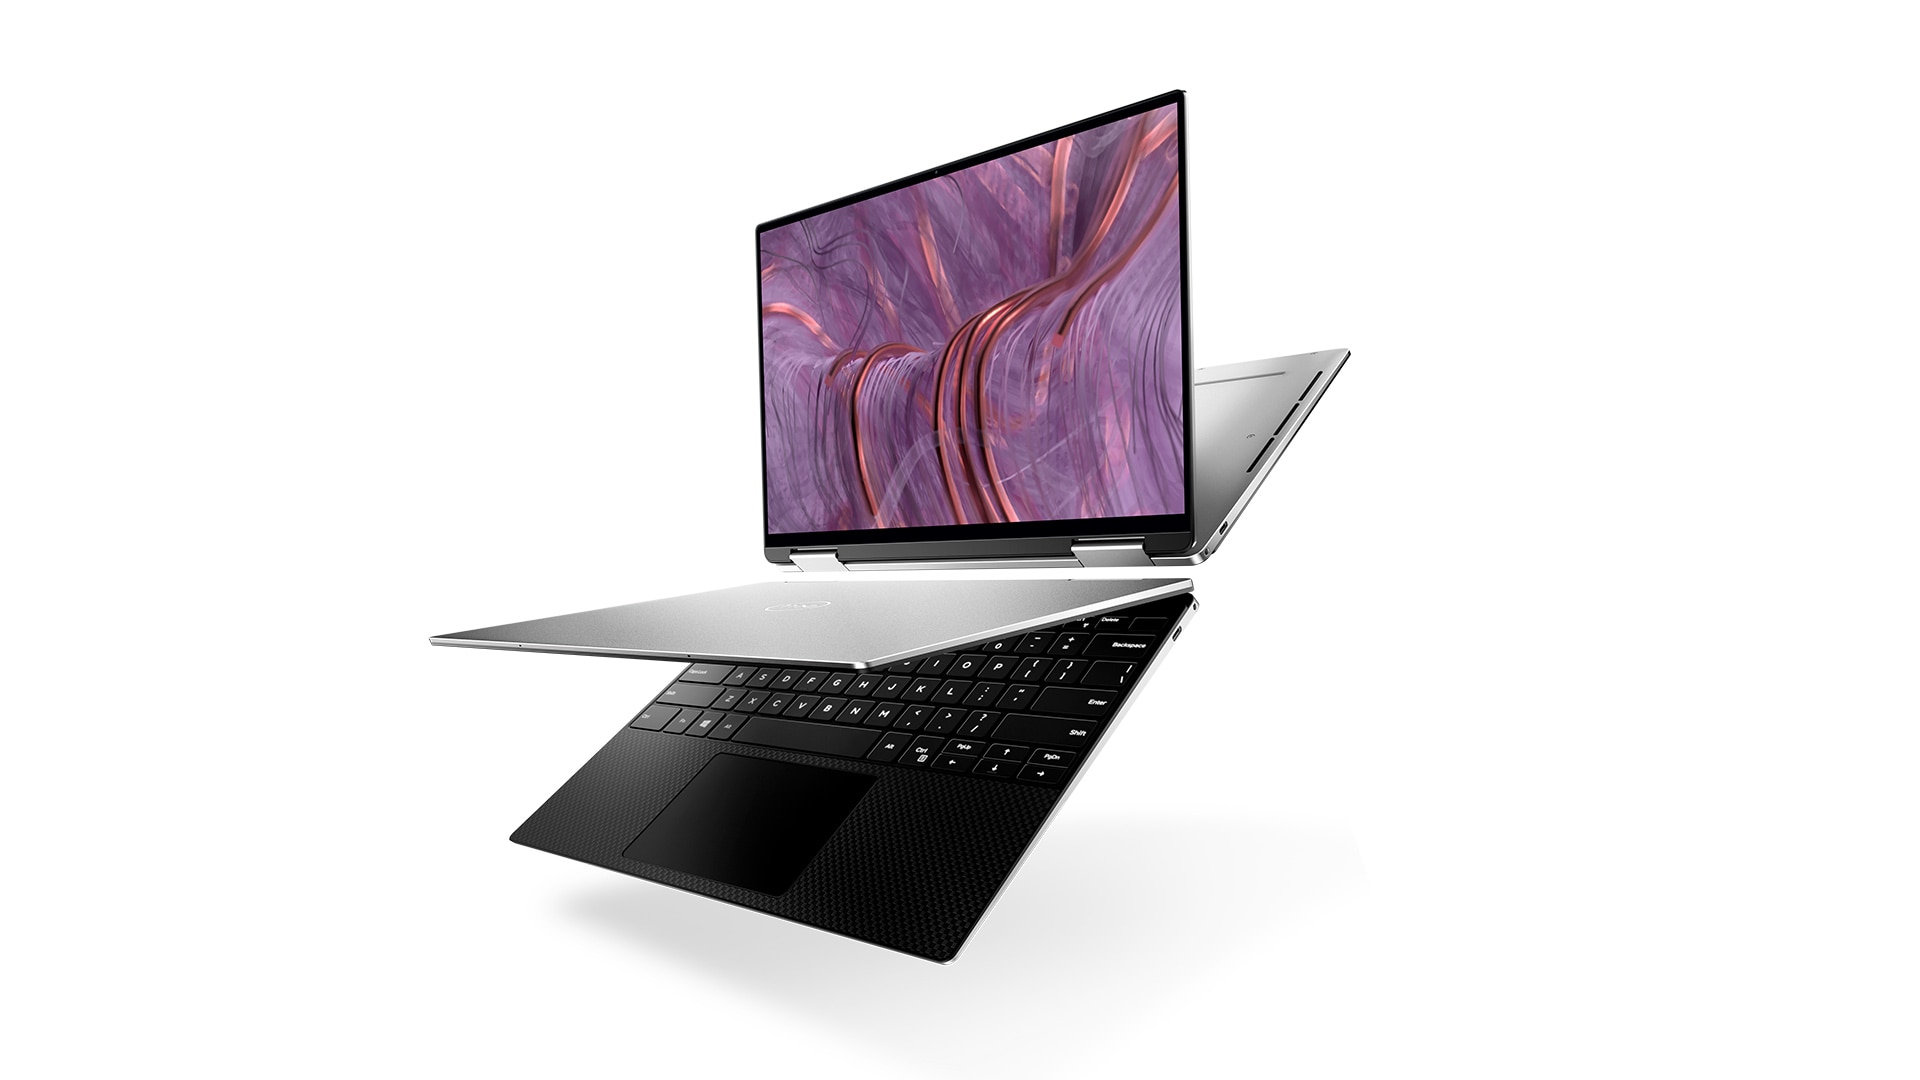 XPS 13 2-in-1 Product Walk Through Video